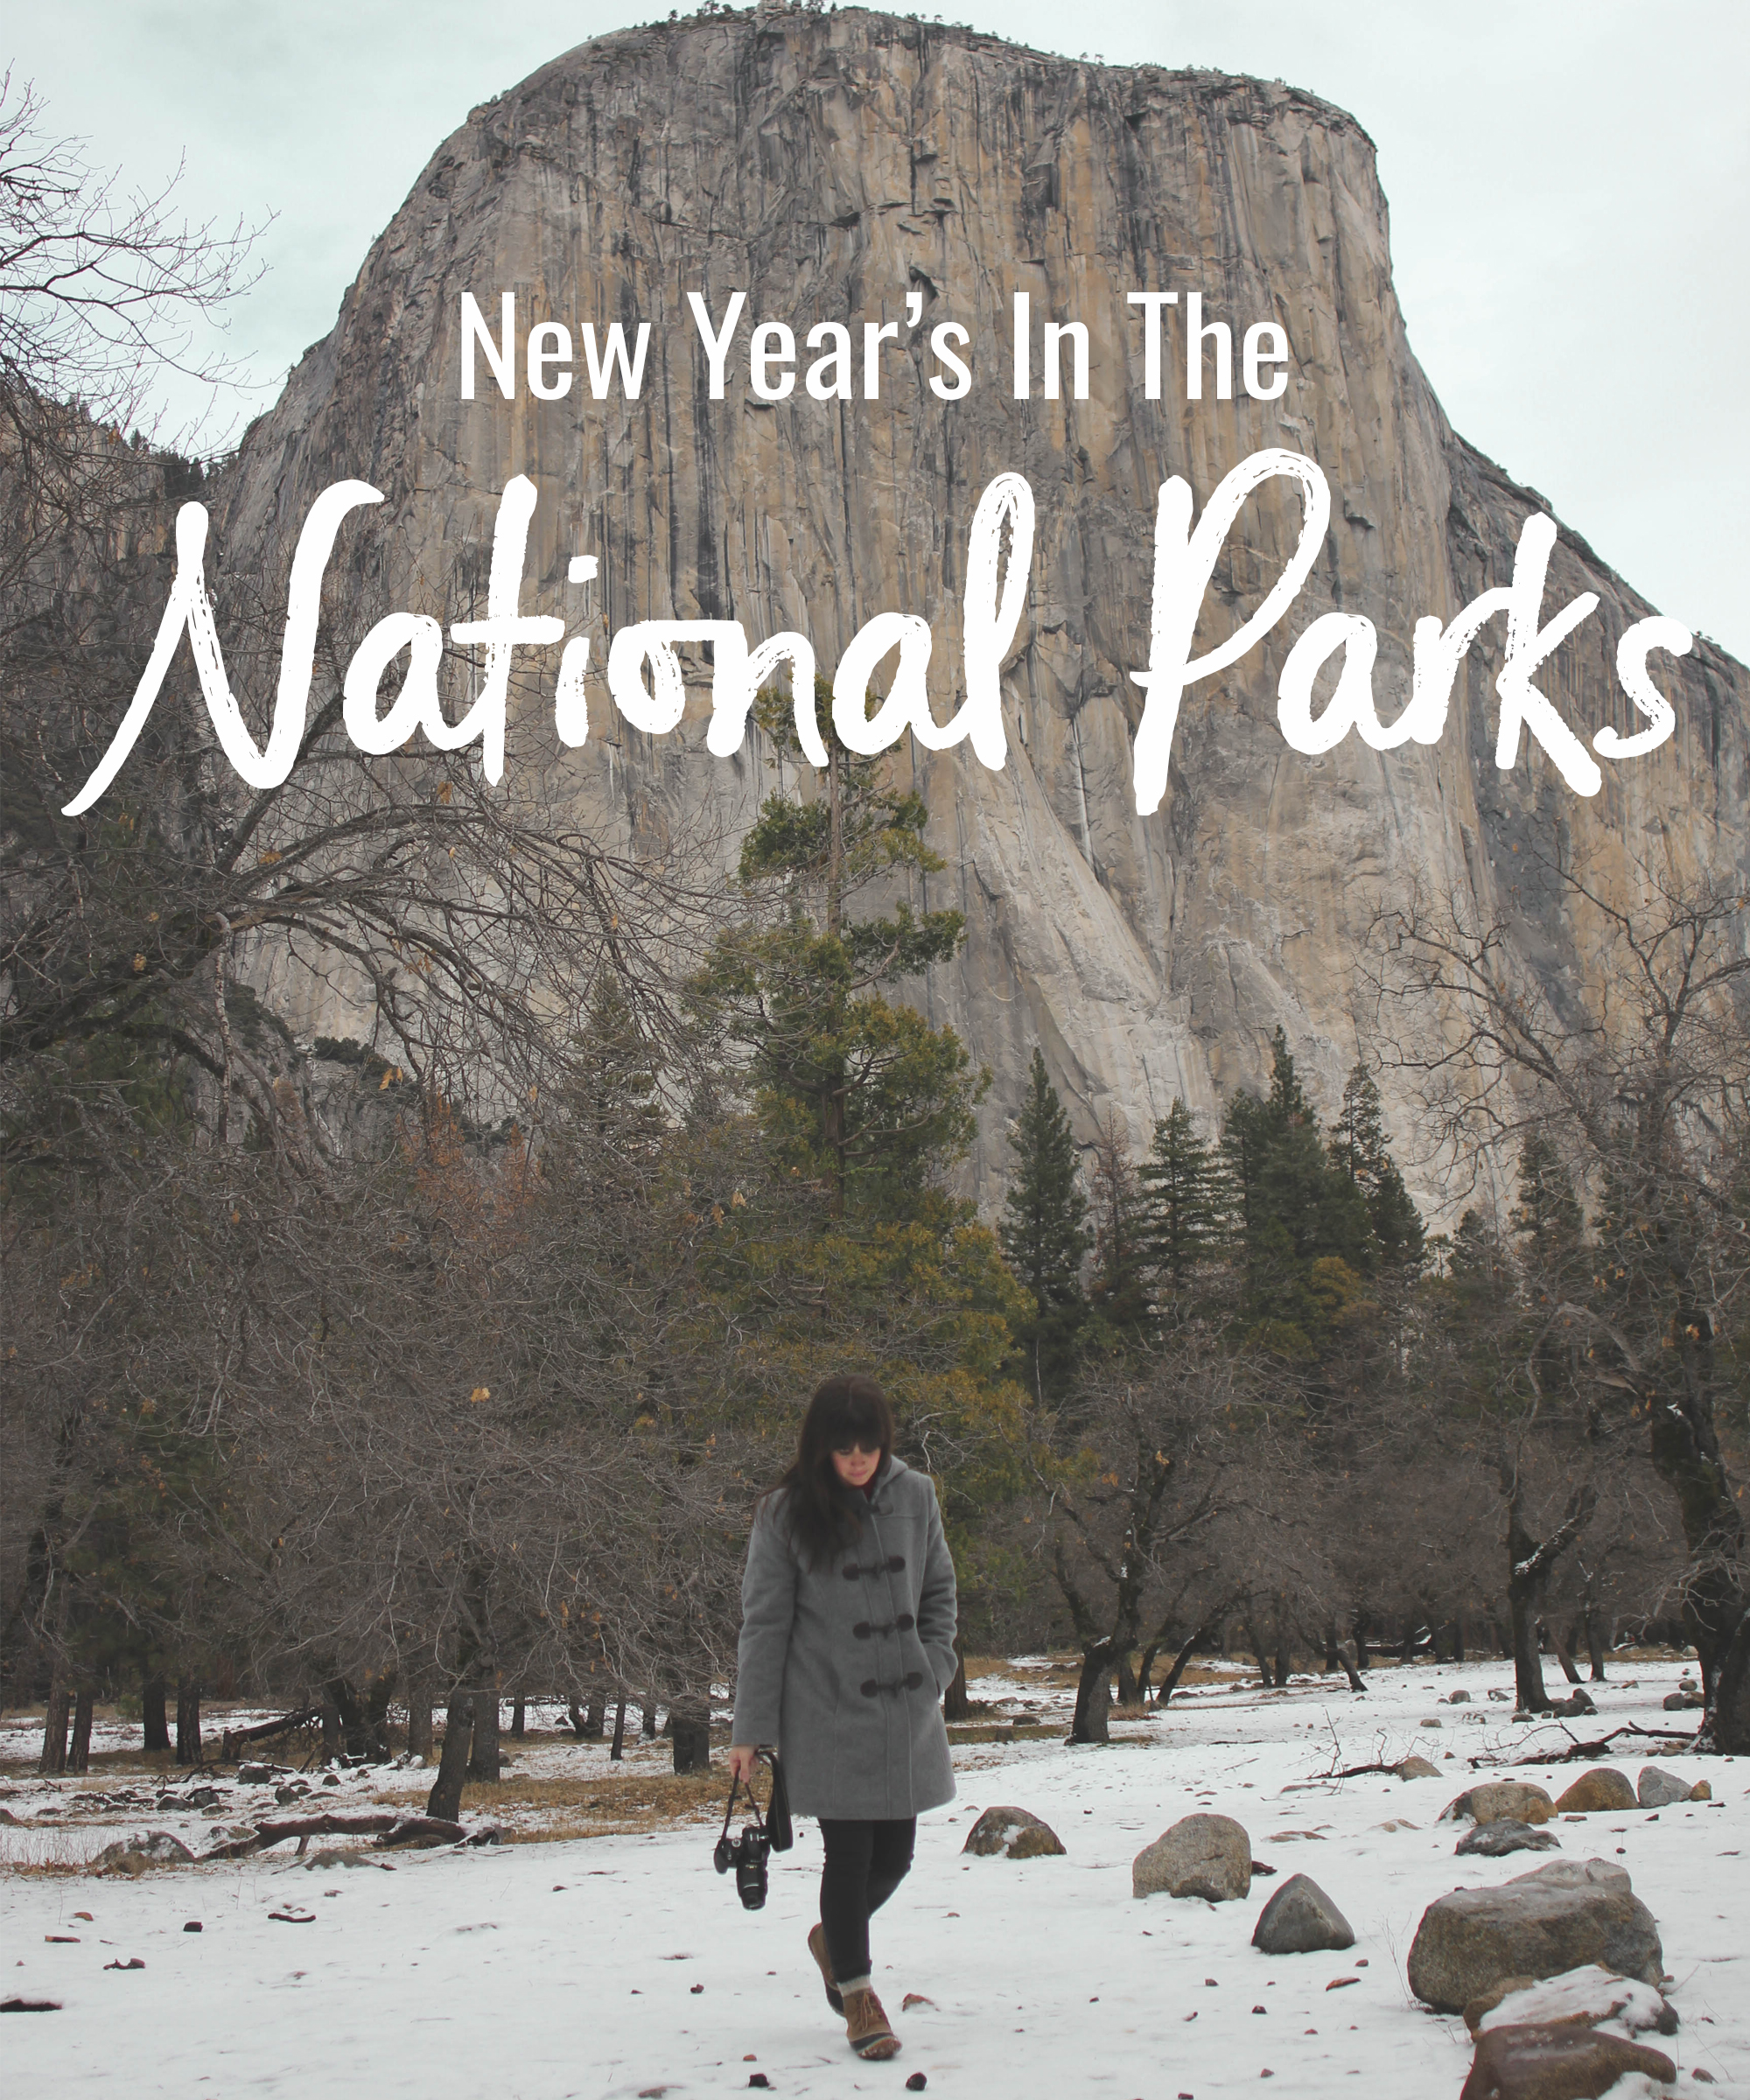 New Year's in the National Parks